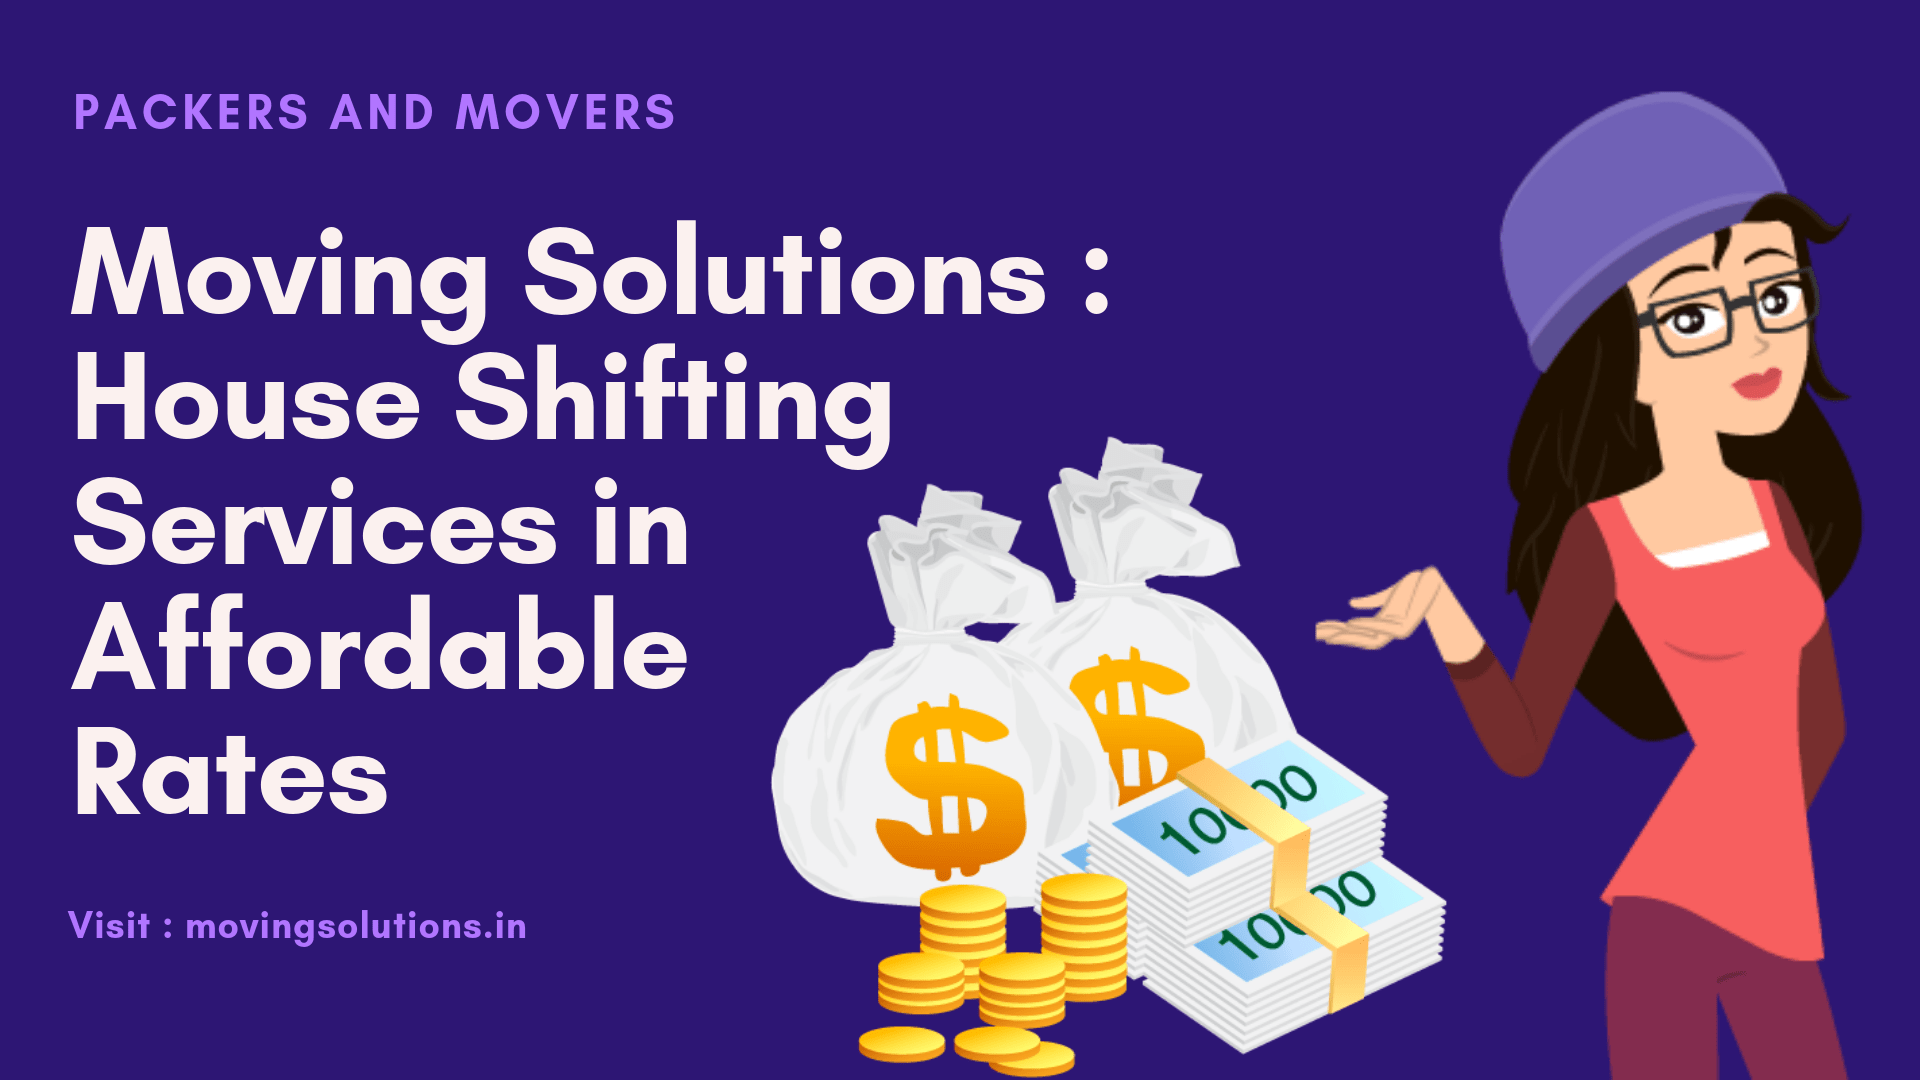 House Shifting Services in Affordable Rates